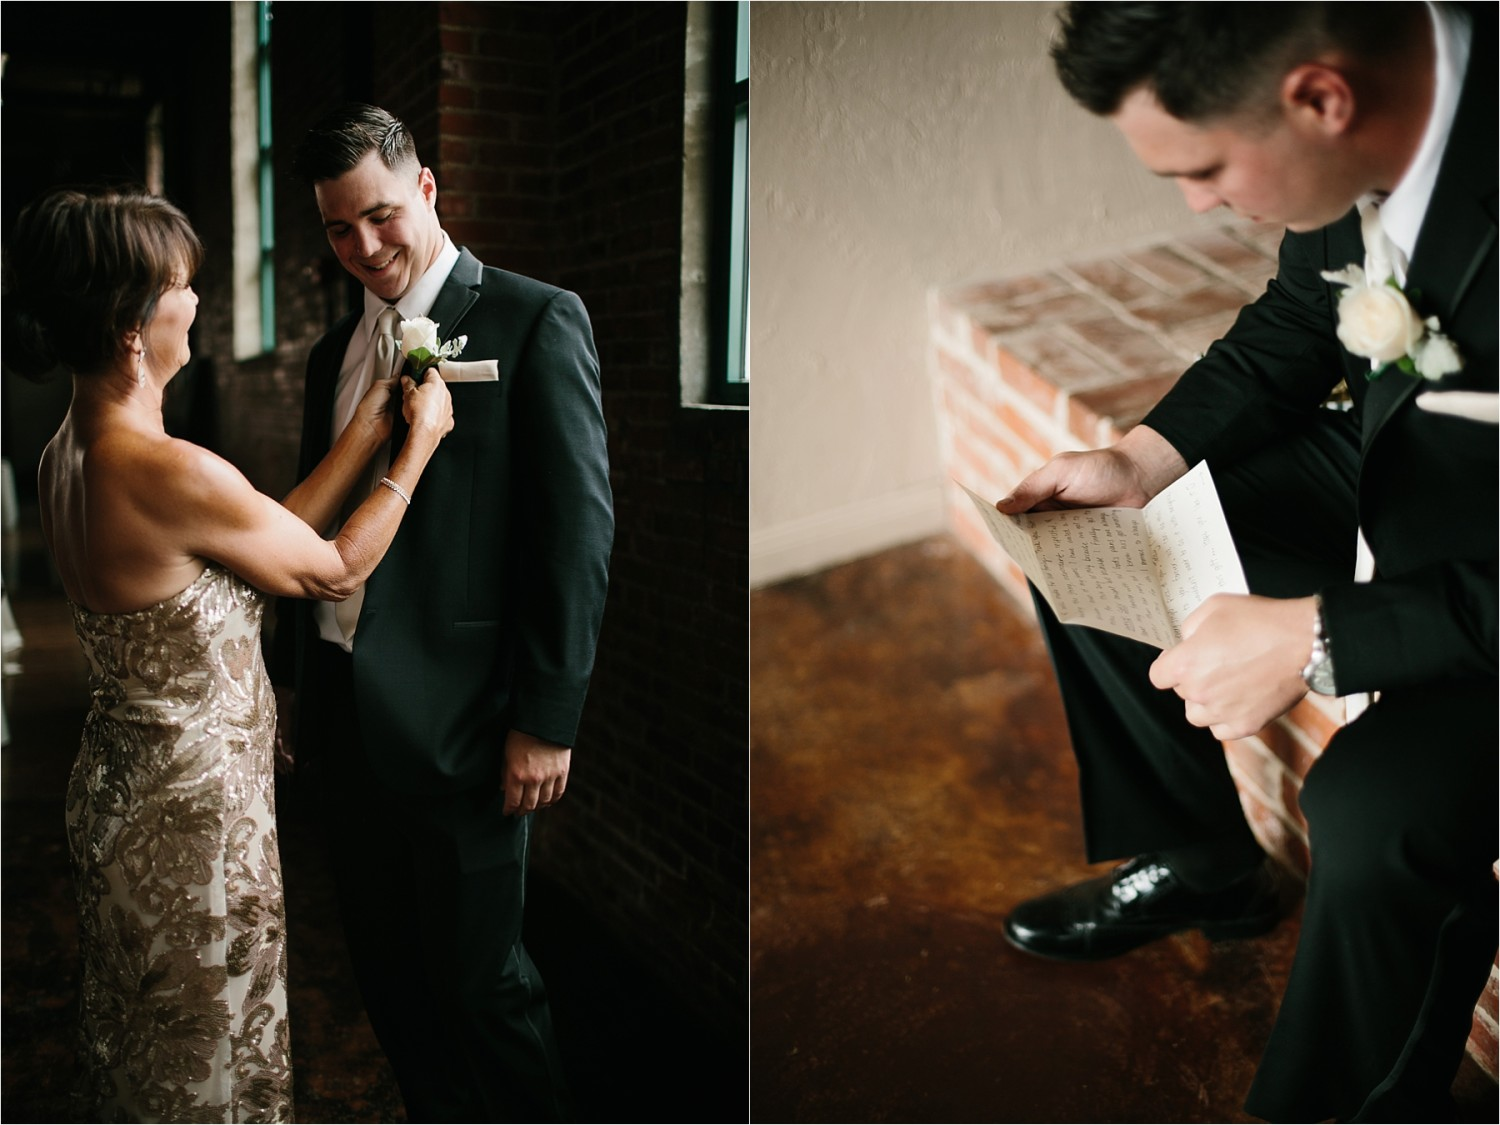 Holly + Jordan __ a black, gold, and greenery organic wedding at The Phoenix Ballroom in Waco, TX by North Texas Wedding Photographer Rachel Meagan Photography __ 28